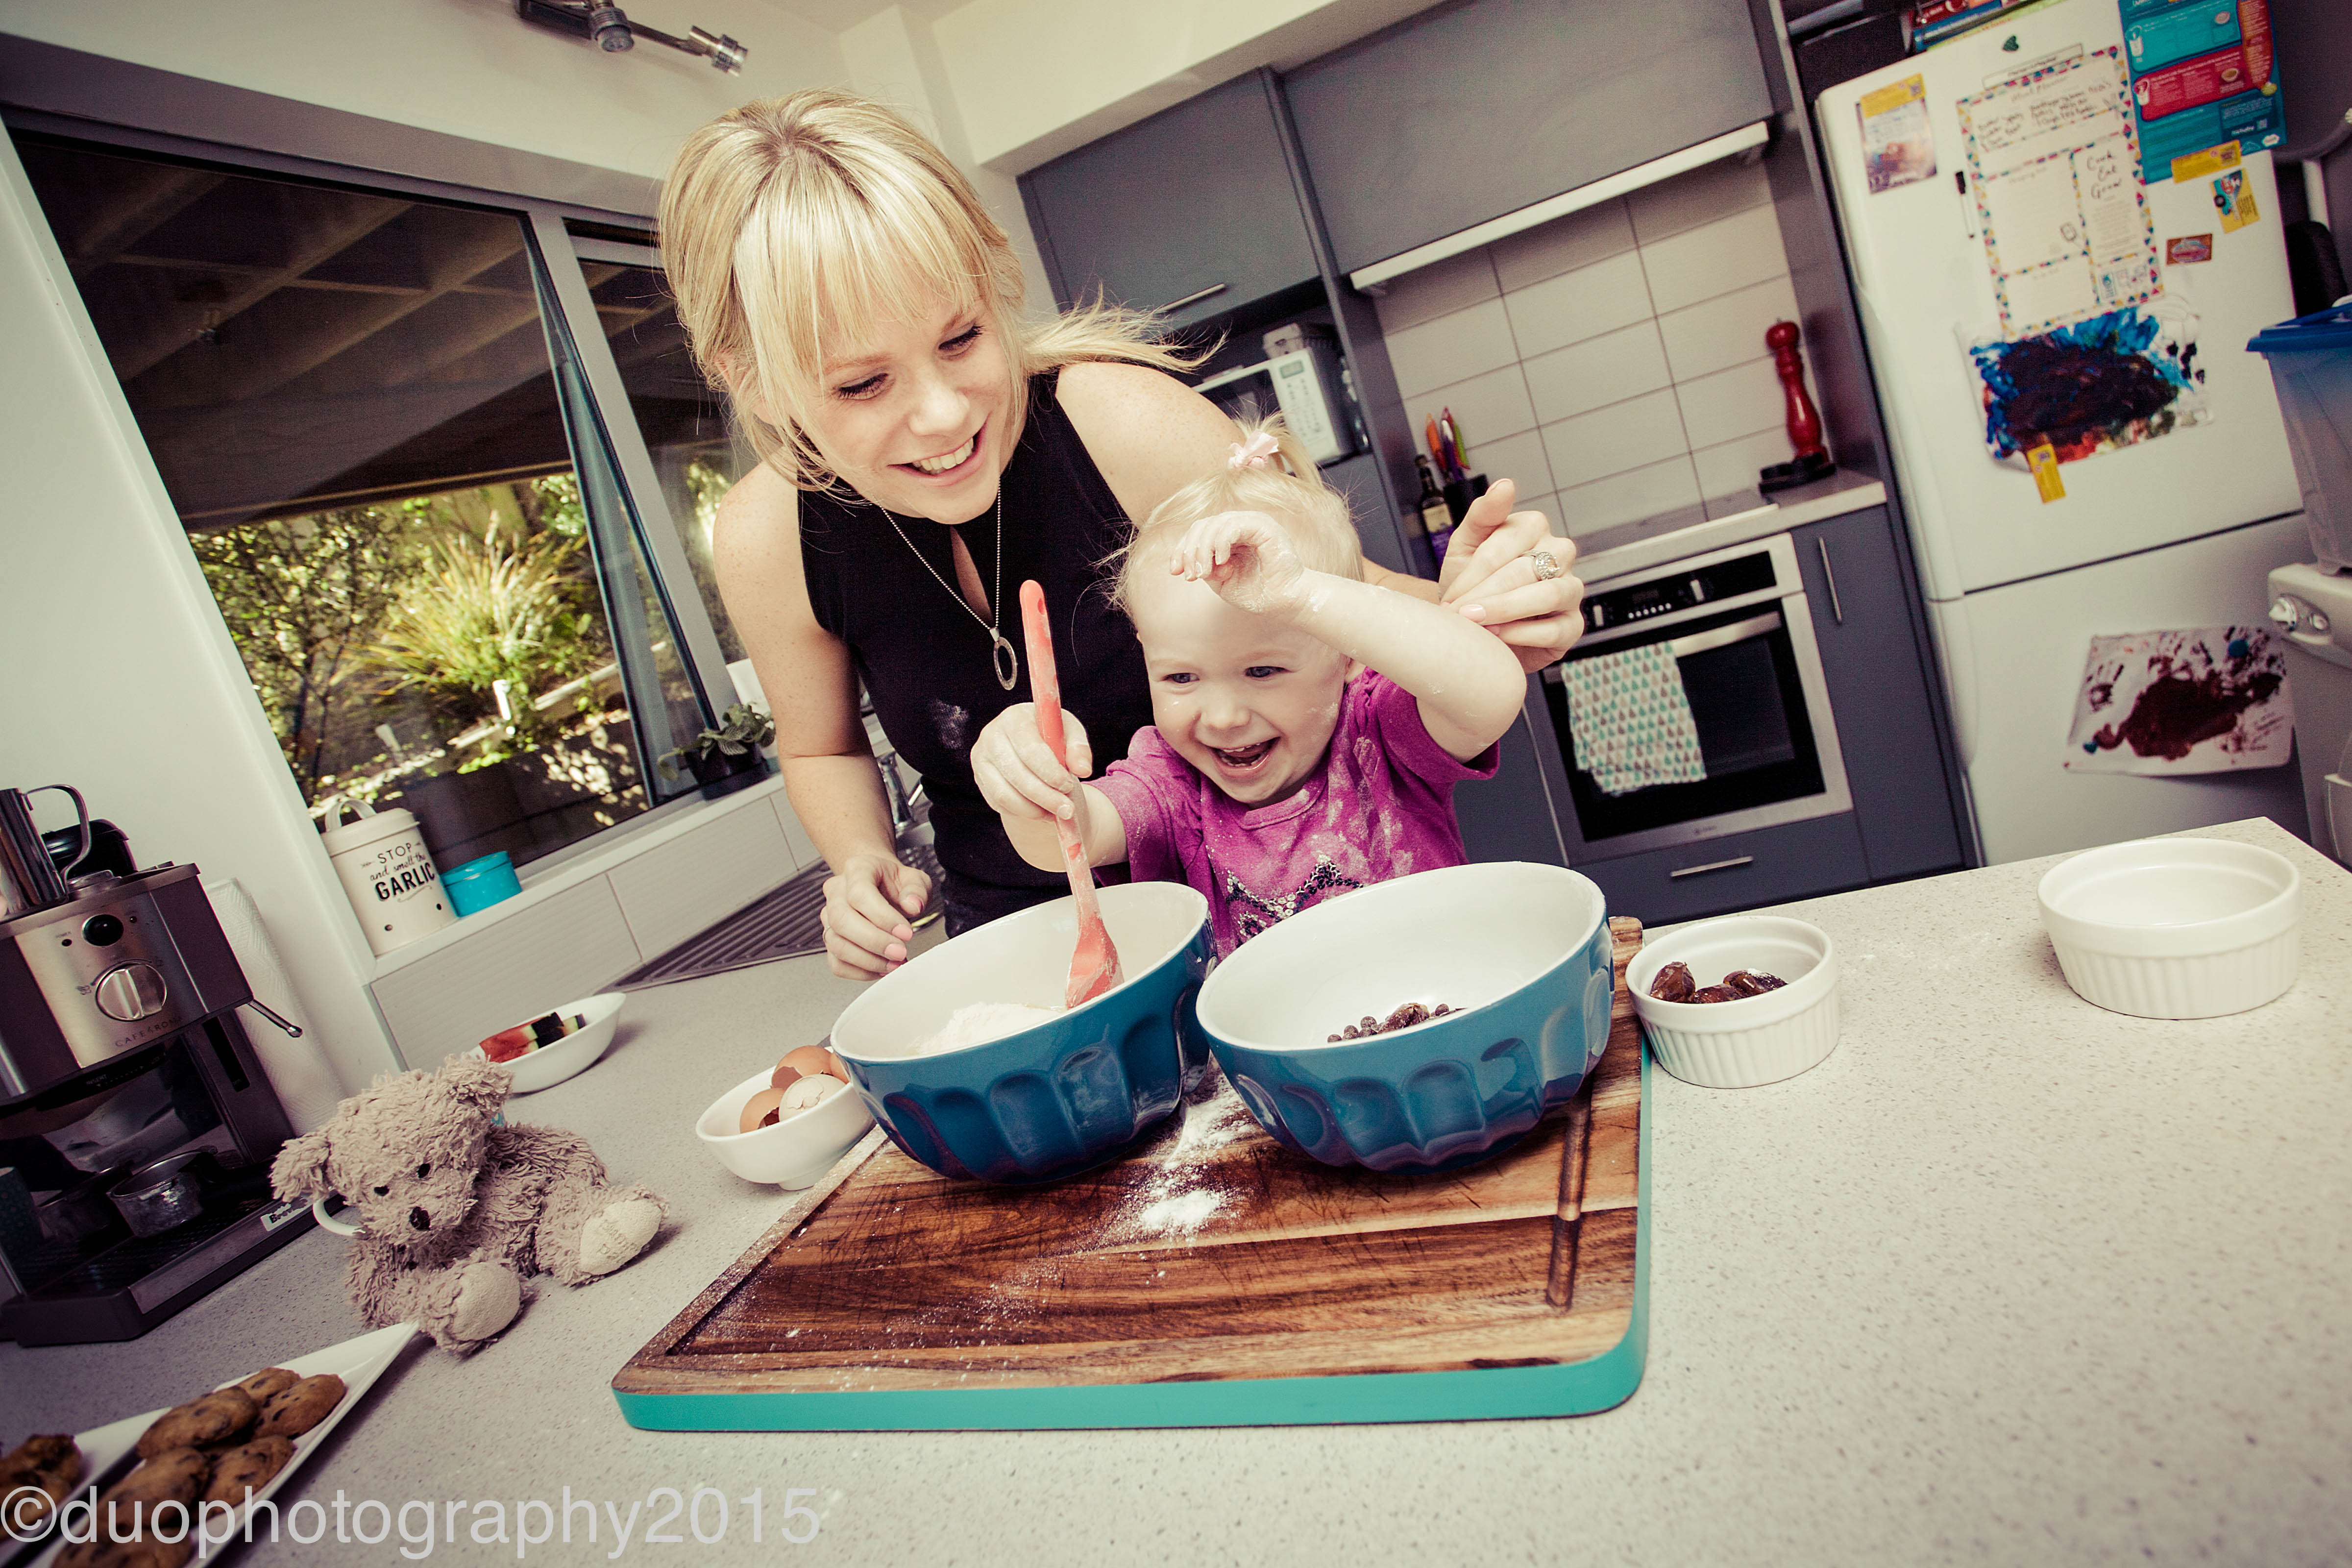 Baking with Mum!